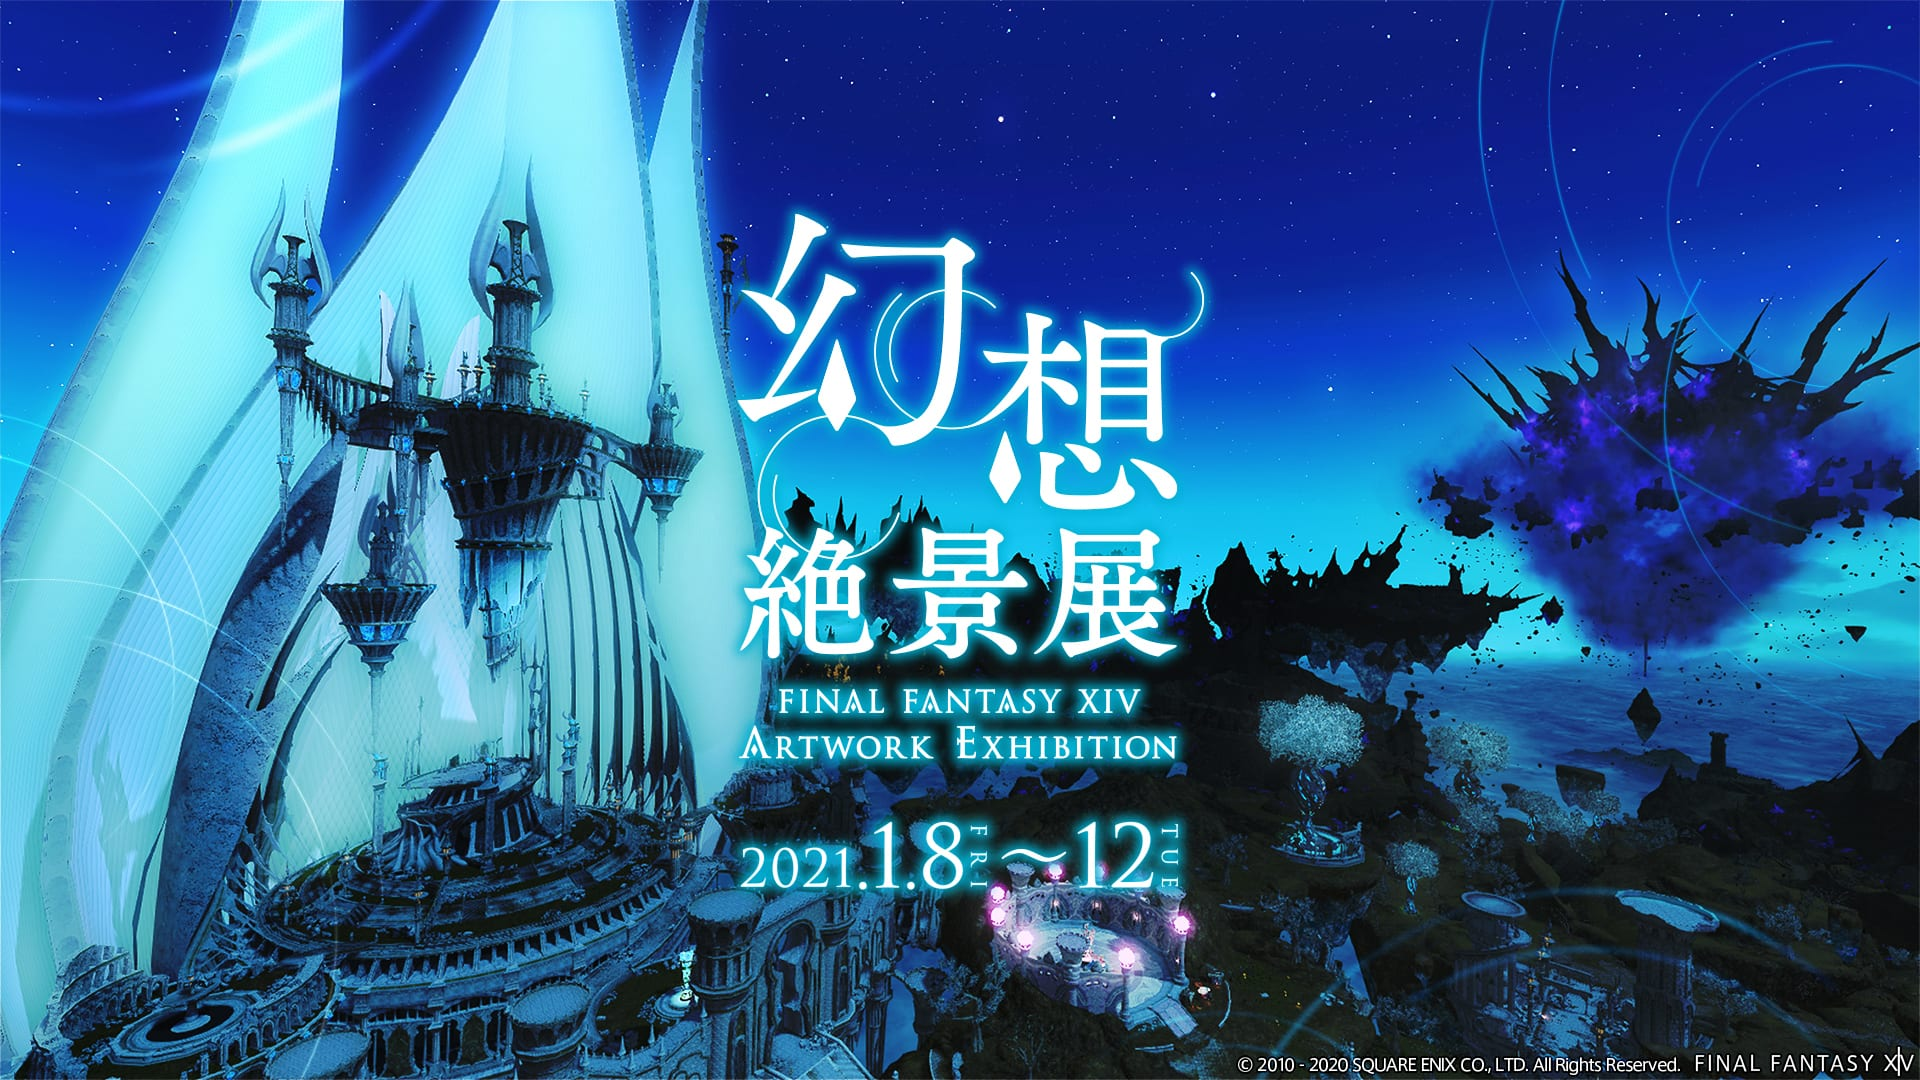 Ultimate Fantasy XIV Art work Exhibition in Tokyo Postponed As a result of COVID-19 1